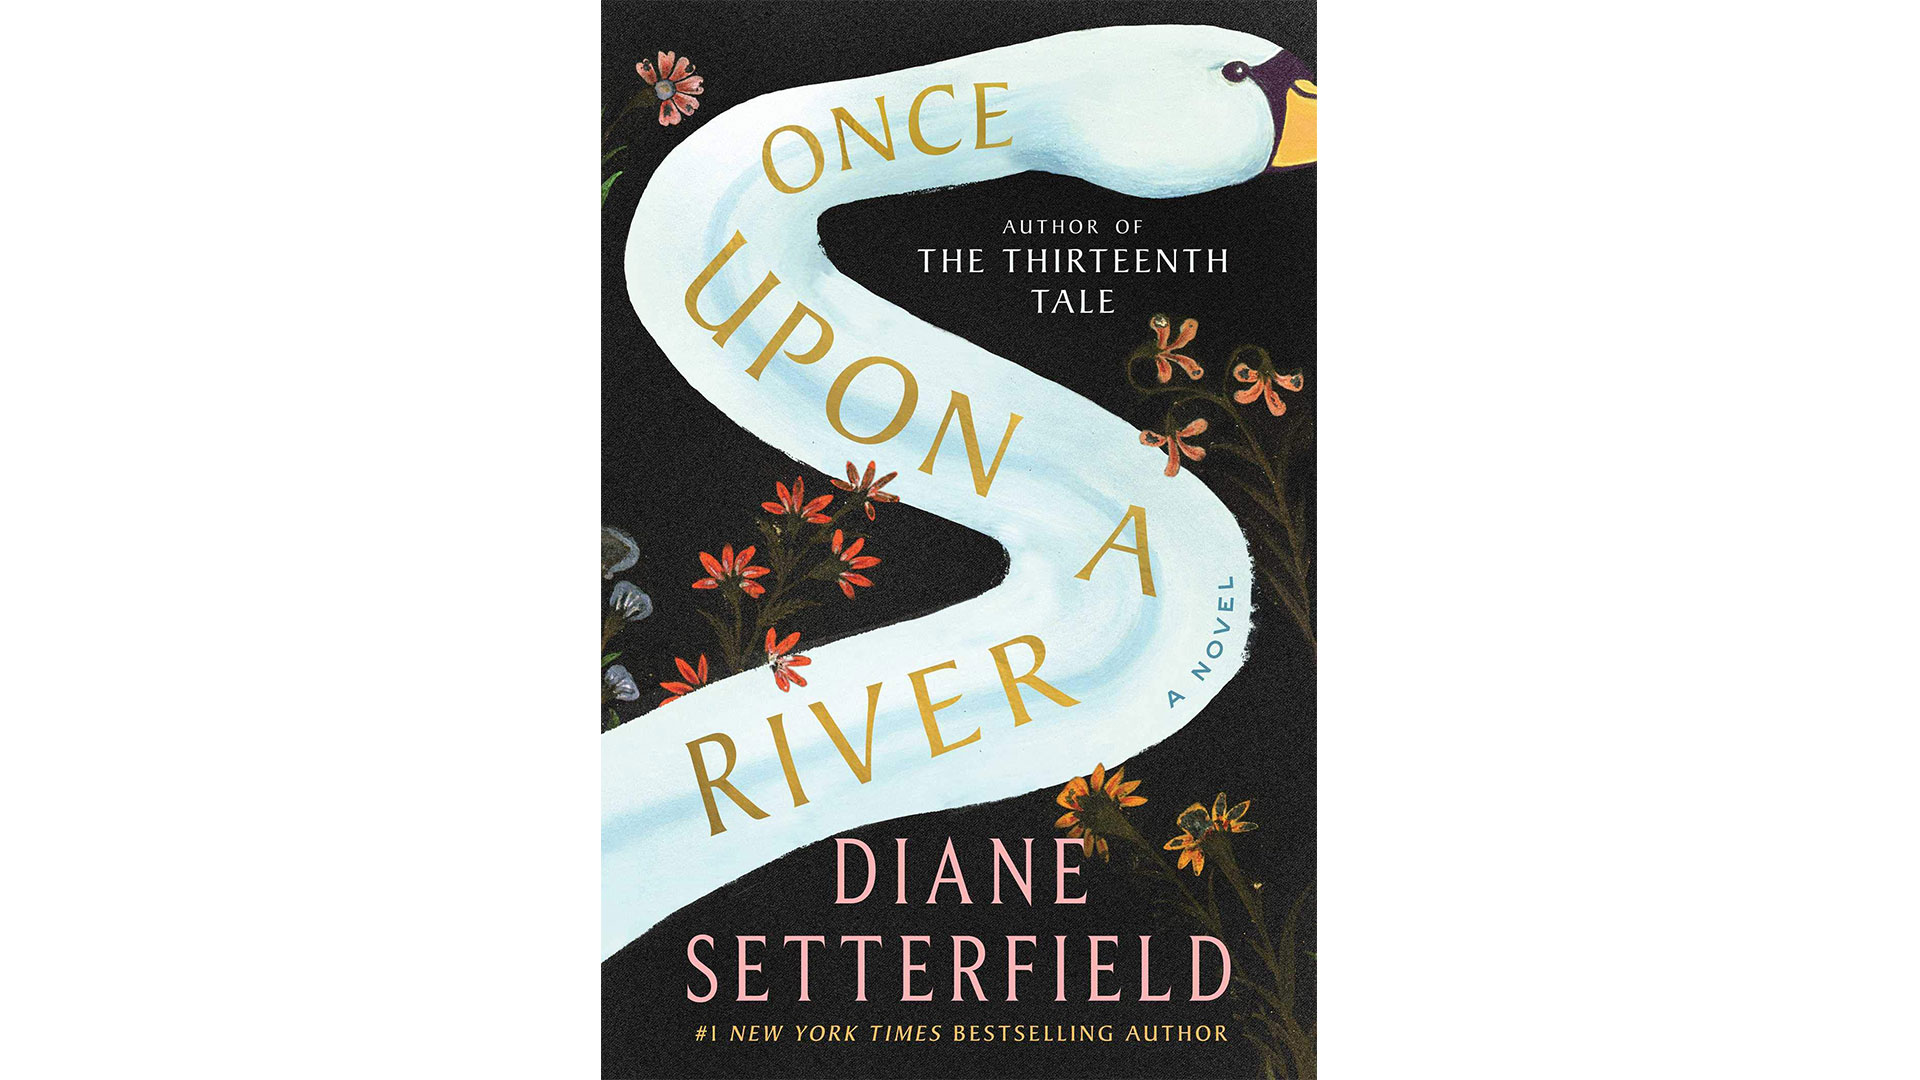 Amazon Best Books 2018 Once Upon a River